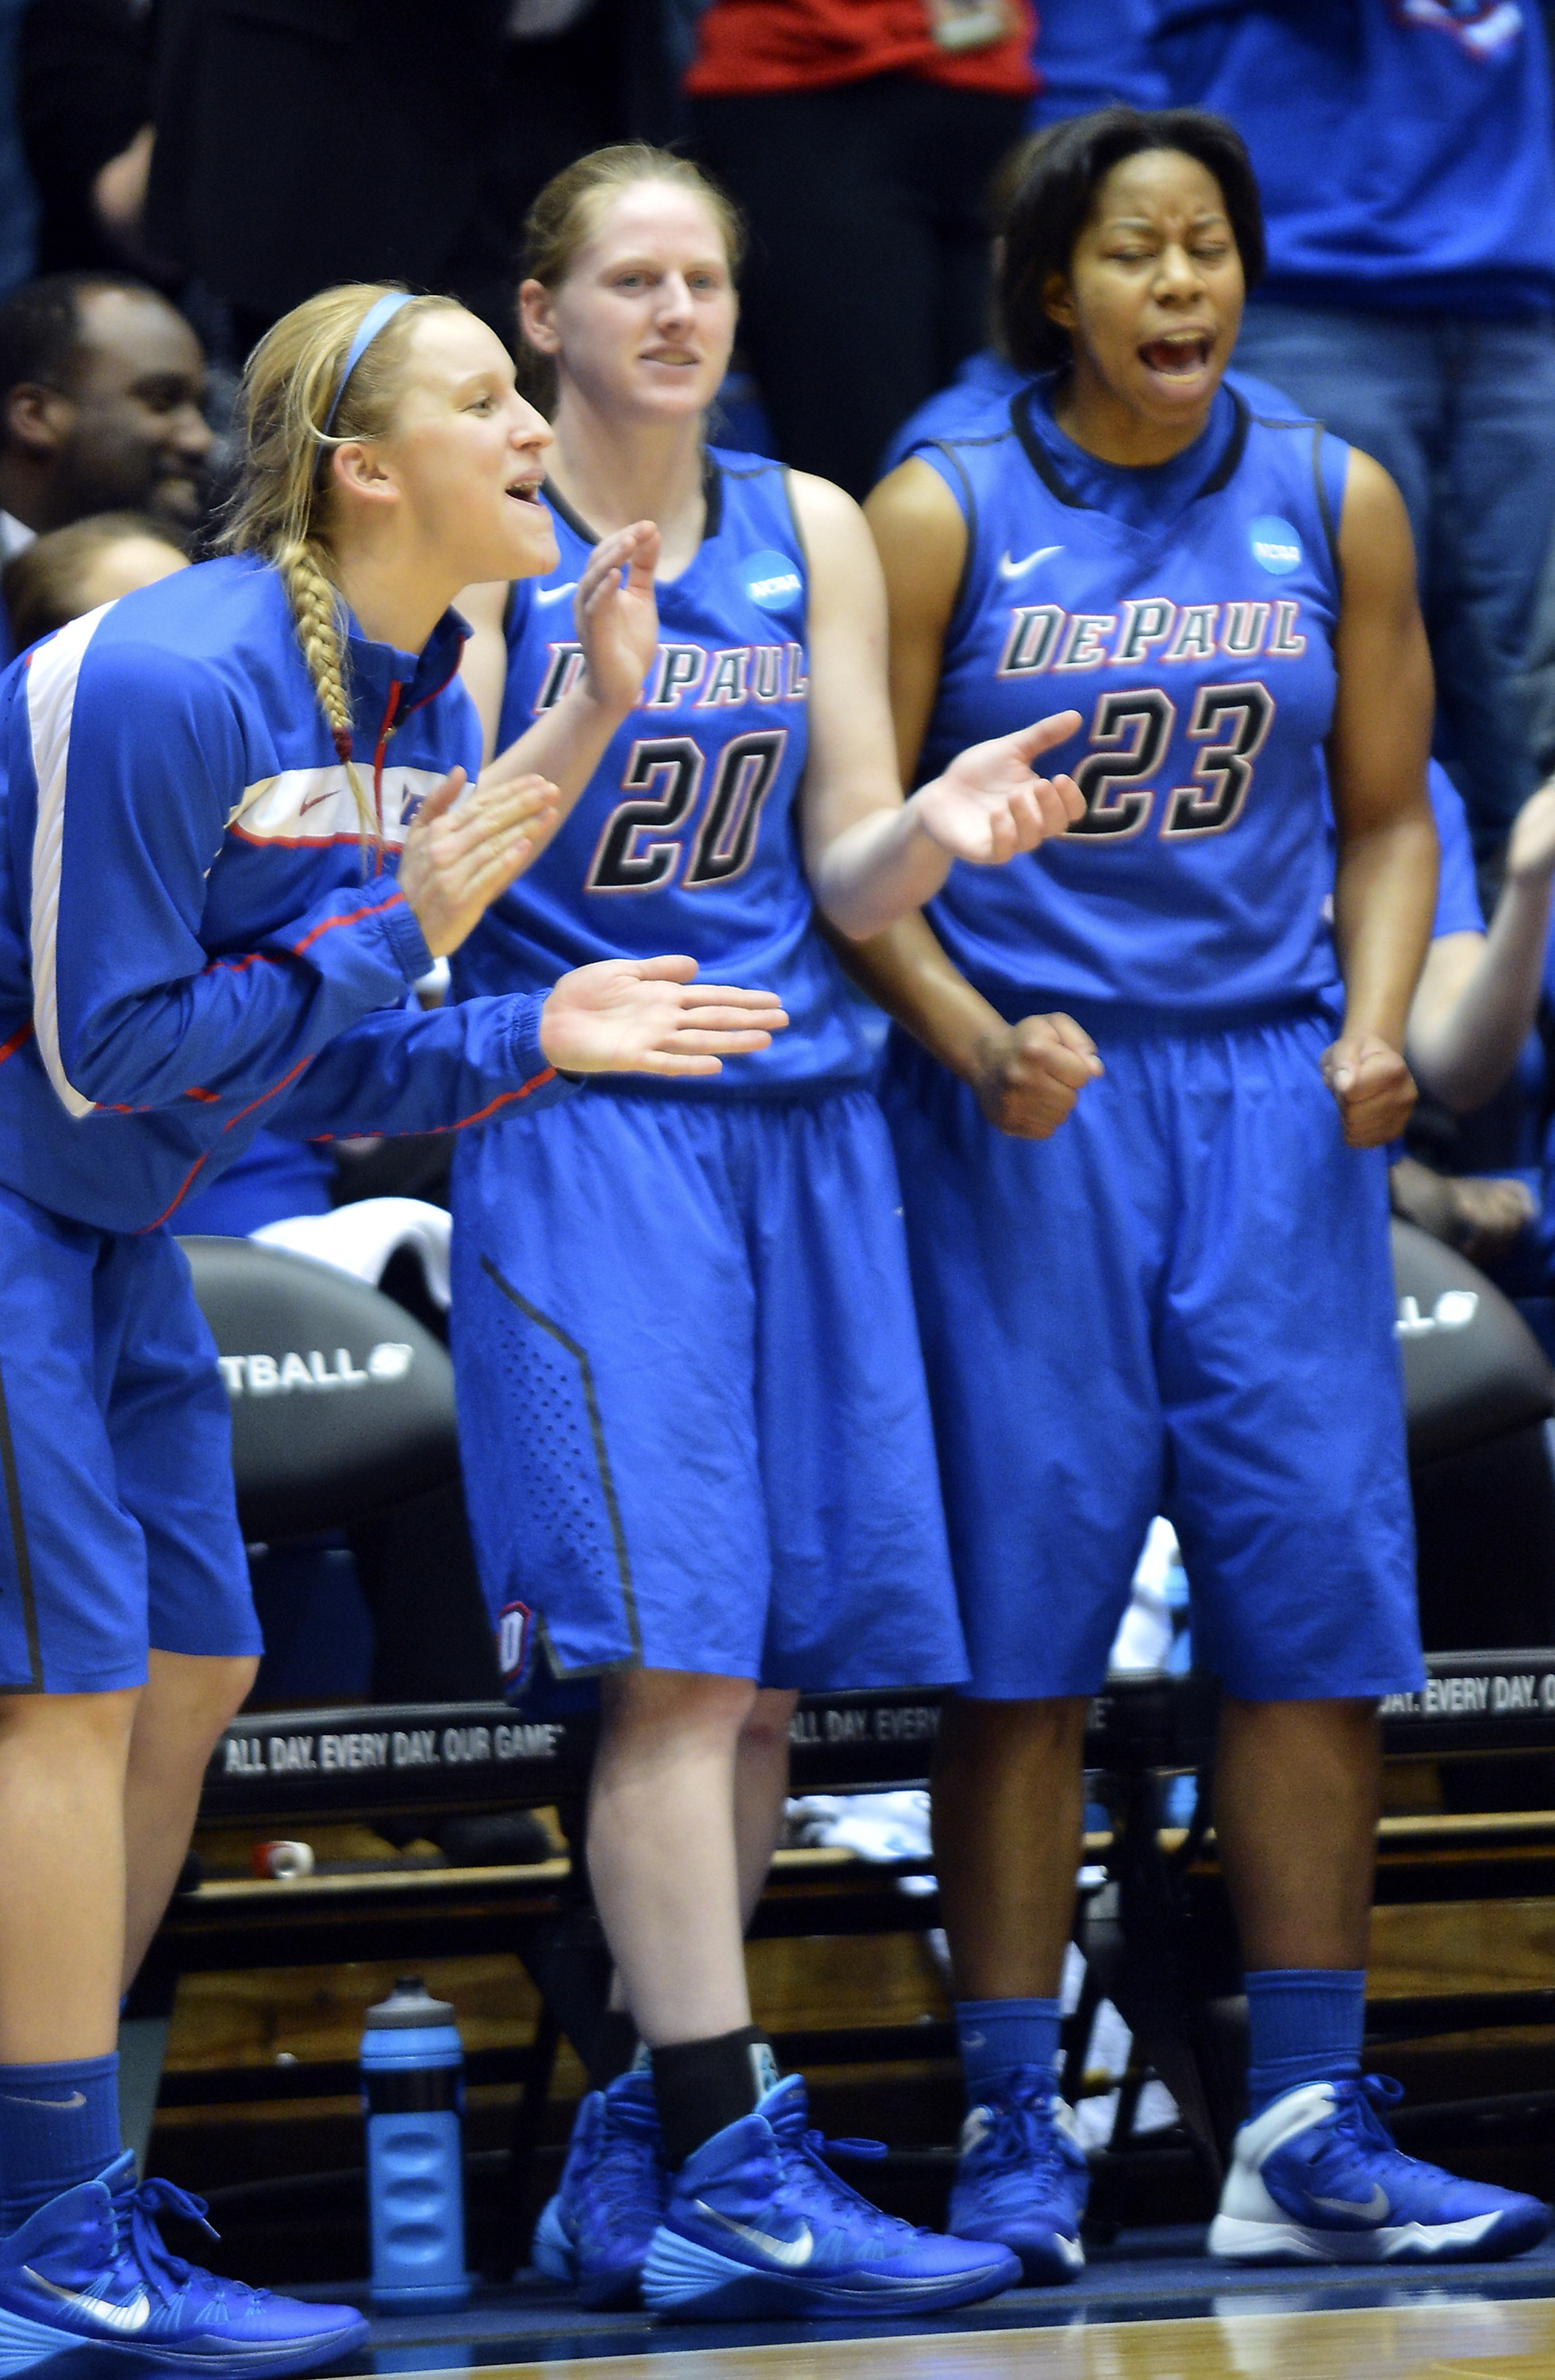 7cd6b7e8b92a DePaul fans will urge the Blue Demons to keep on dancing at Thursday s NCAA  Sweet 16